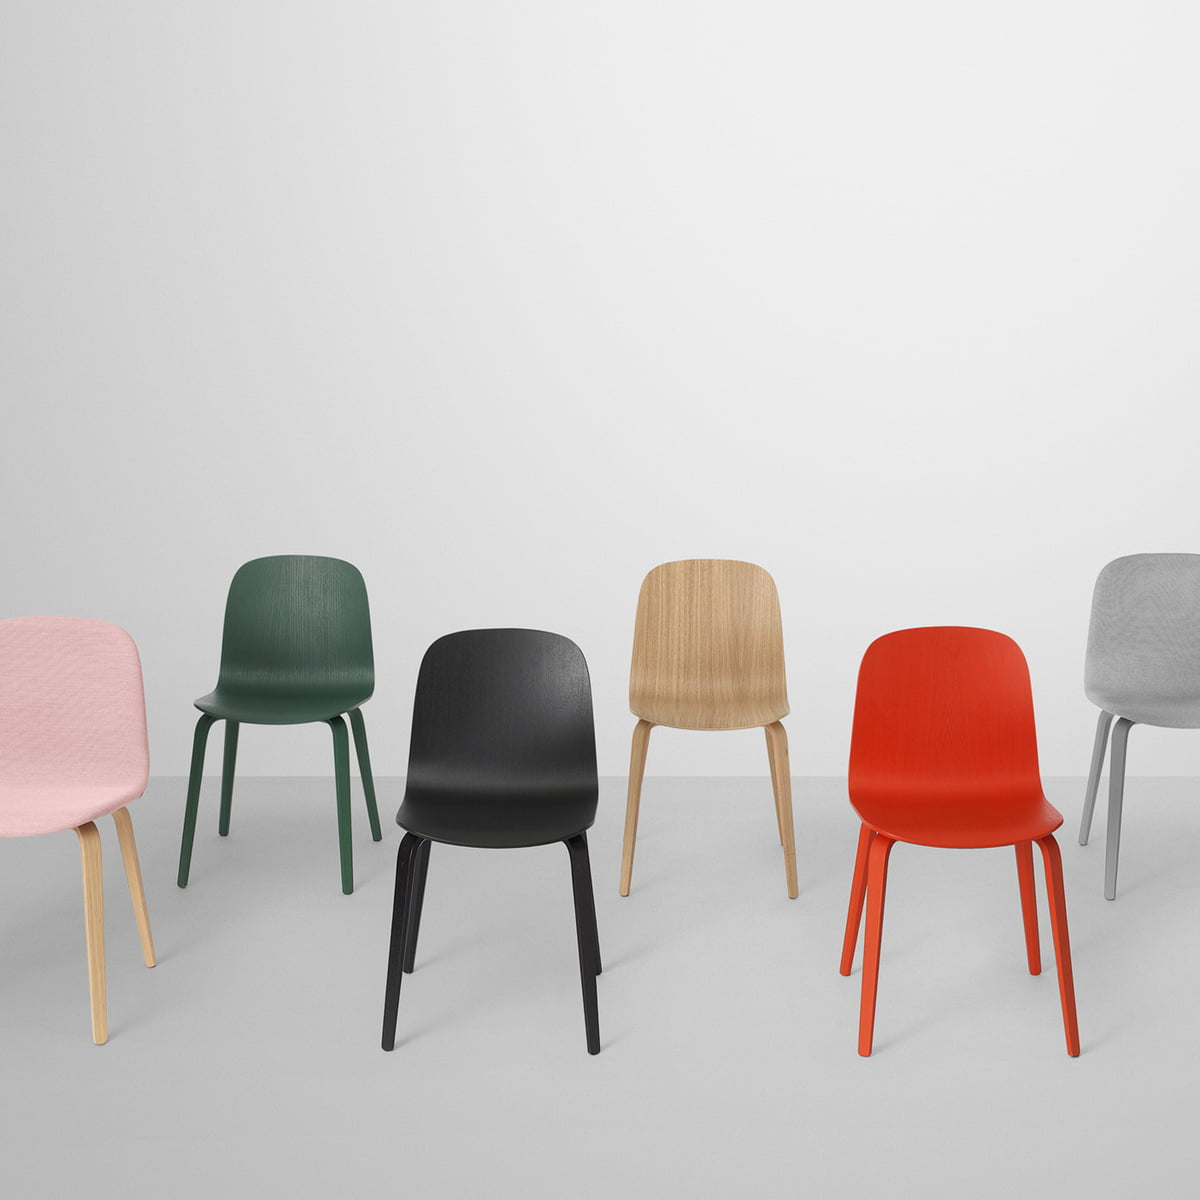 the visu chair by mika tolvanen for muuto